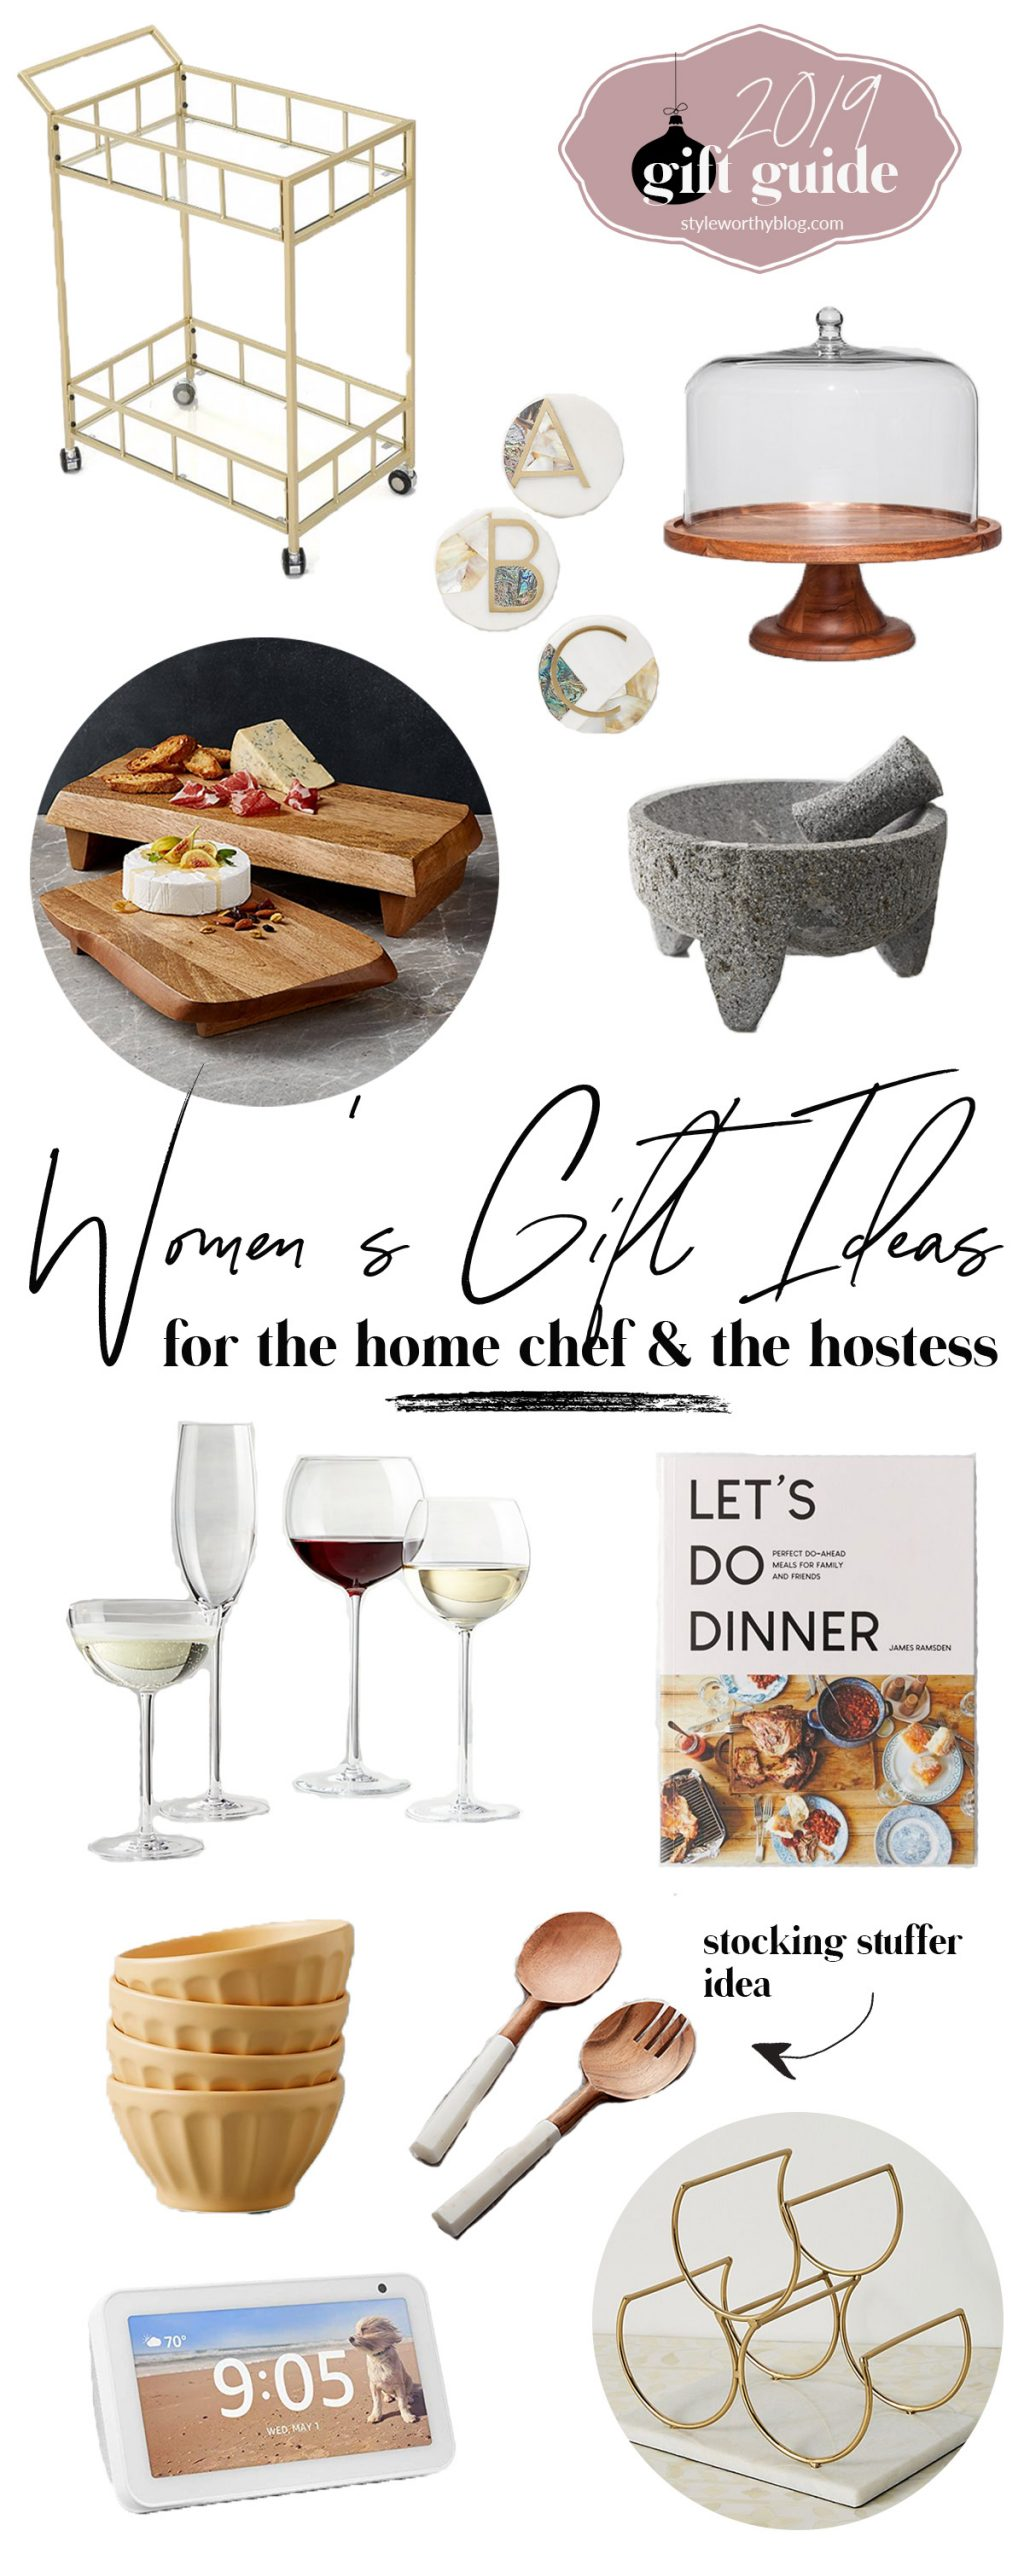 Women's gift guide. Gift ideas for the home chef and the hostess